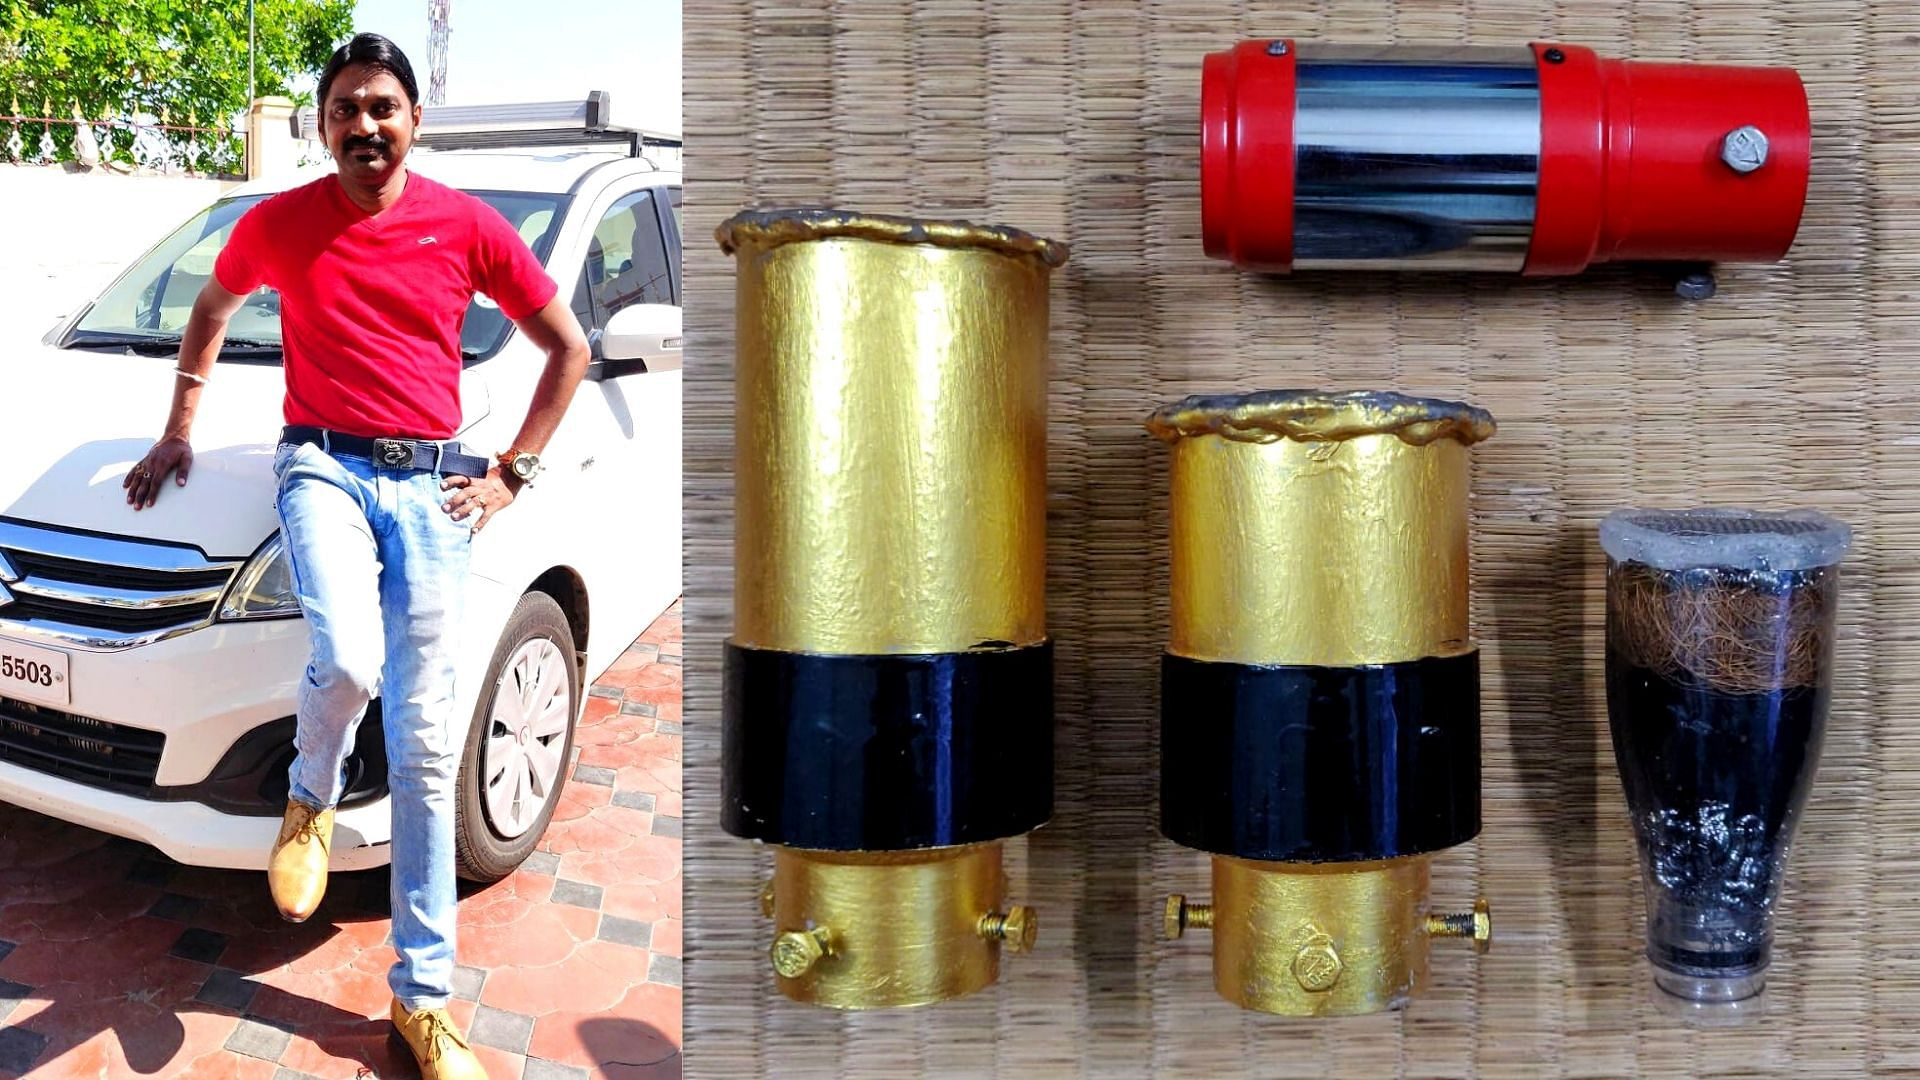 Rs 140 to Solve Air Pollution: TN Man's Coconut Coir Filter Cuts Vehicle Emissions by 40%!